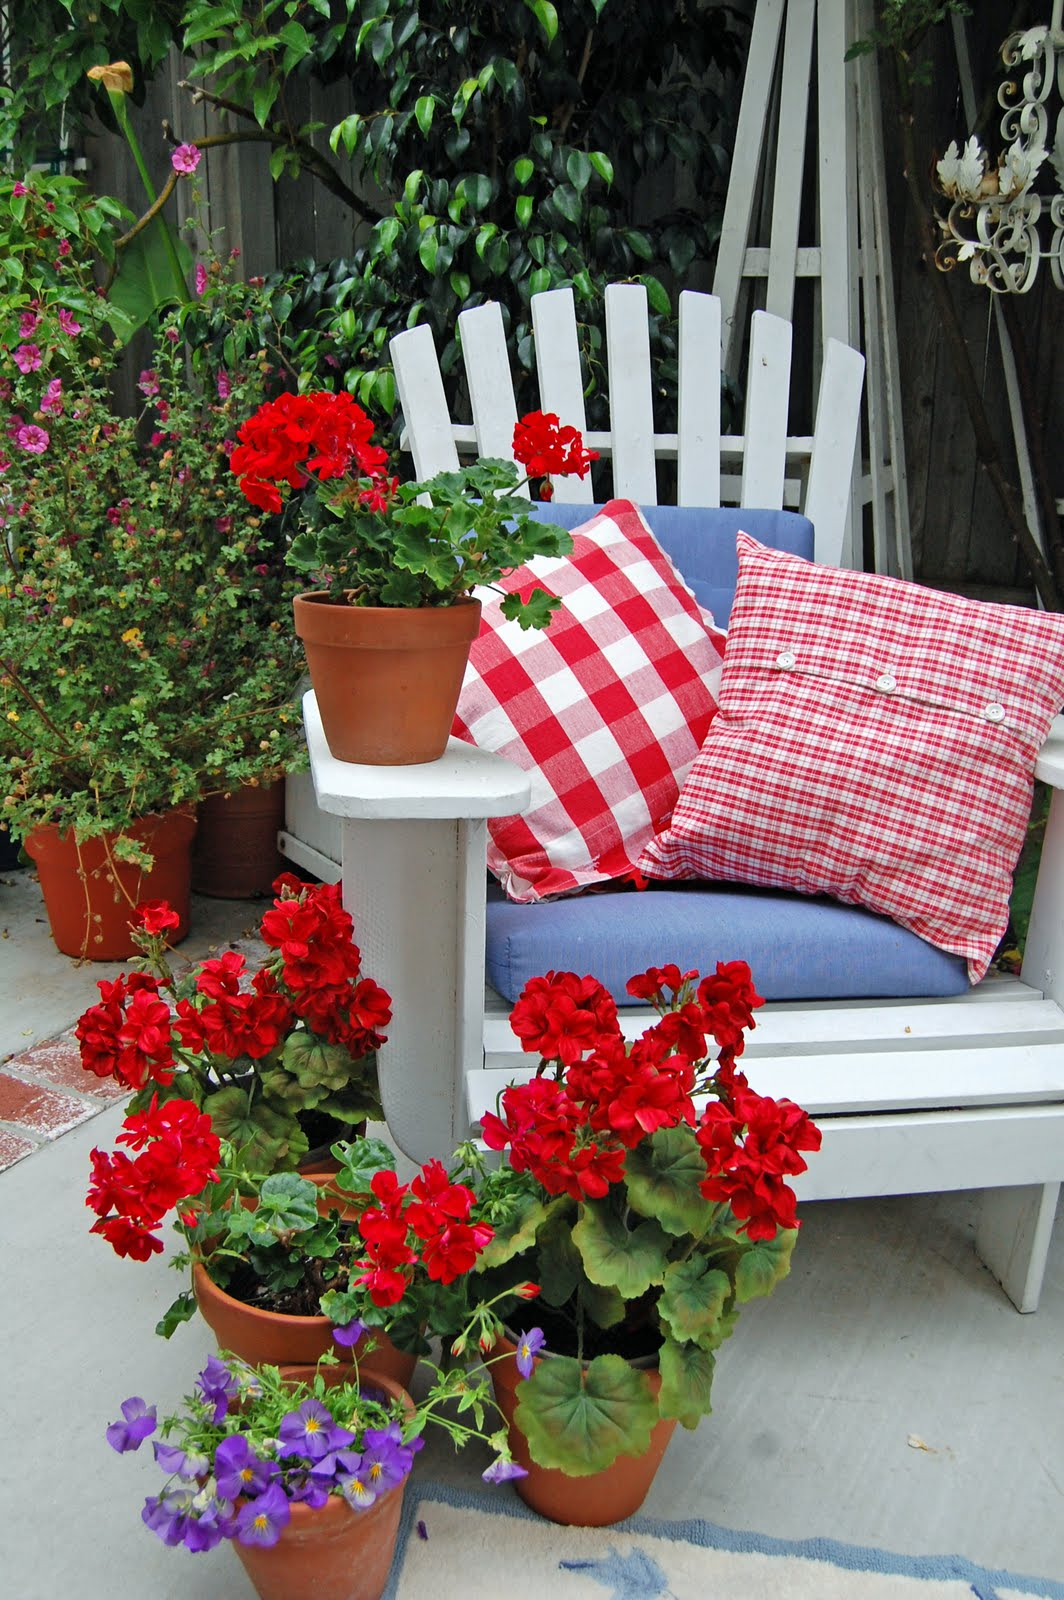 In remembrance and celebration on memorial day fox hollow cottage - Care geraniums flourishing balcony porch ...